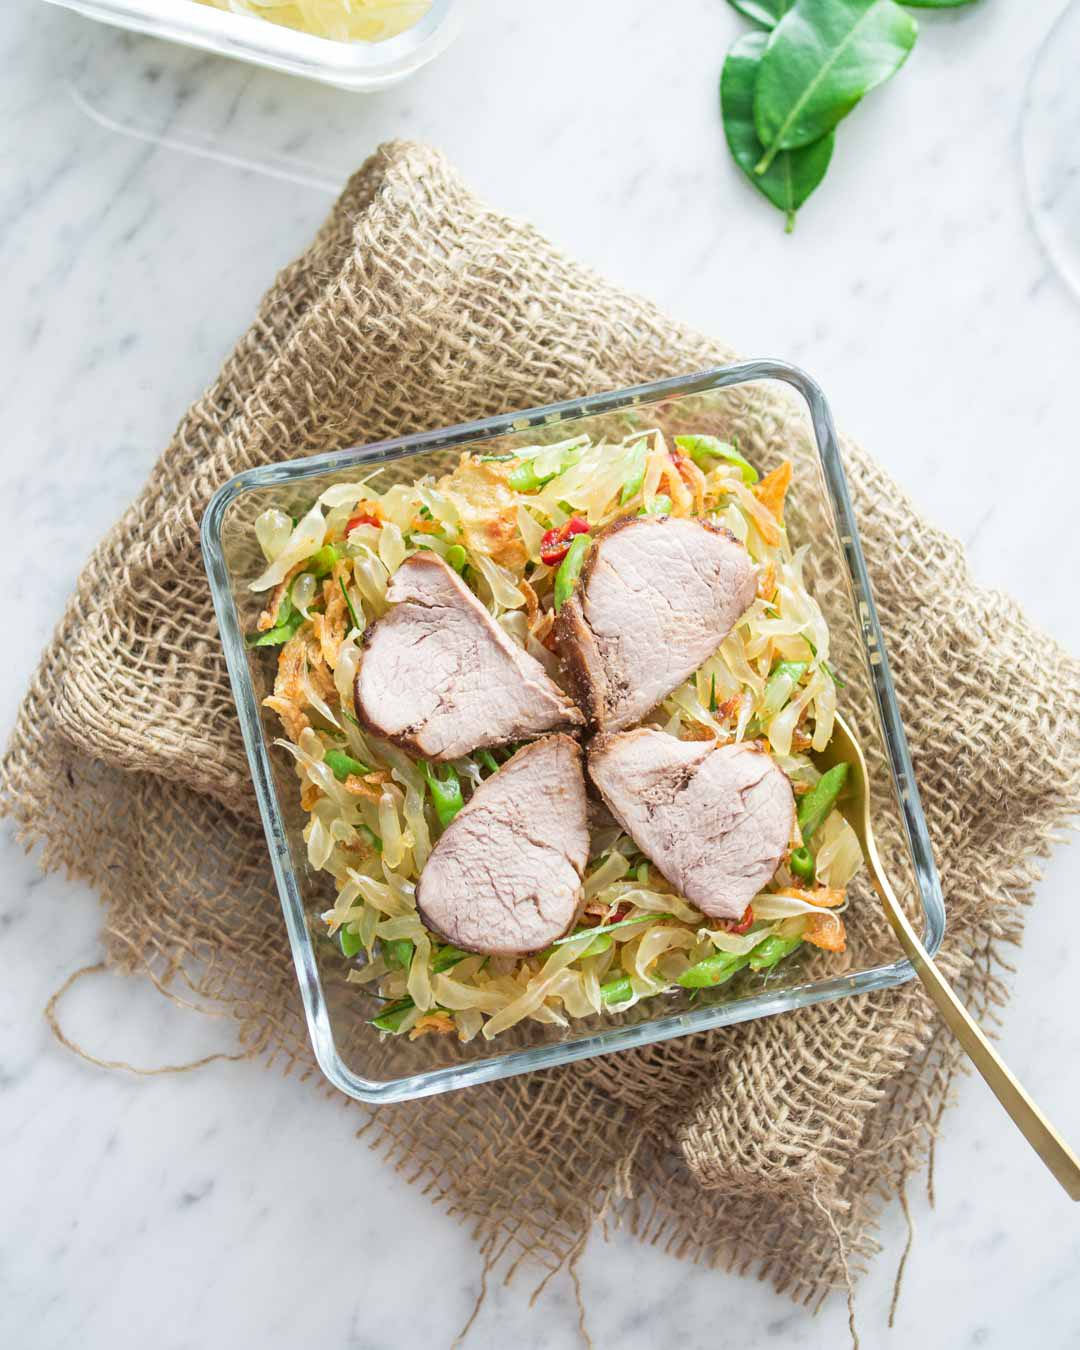 Thai pomelo salad with grilled pork in a glass bowl